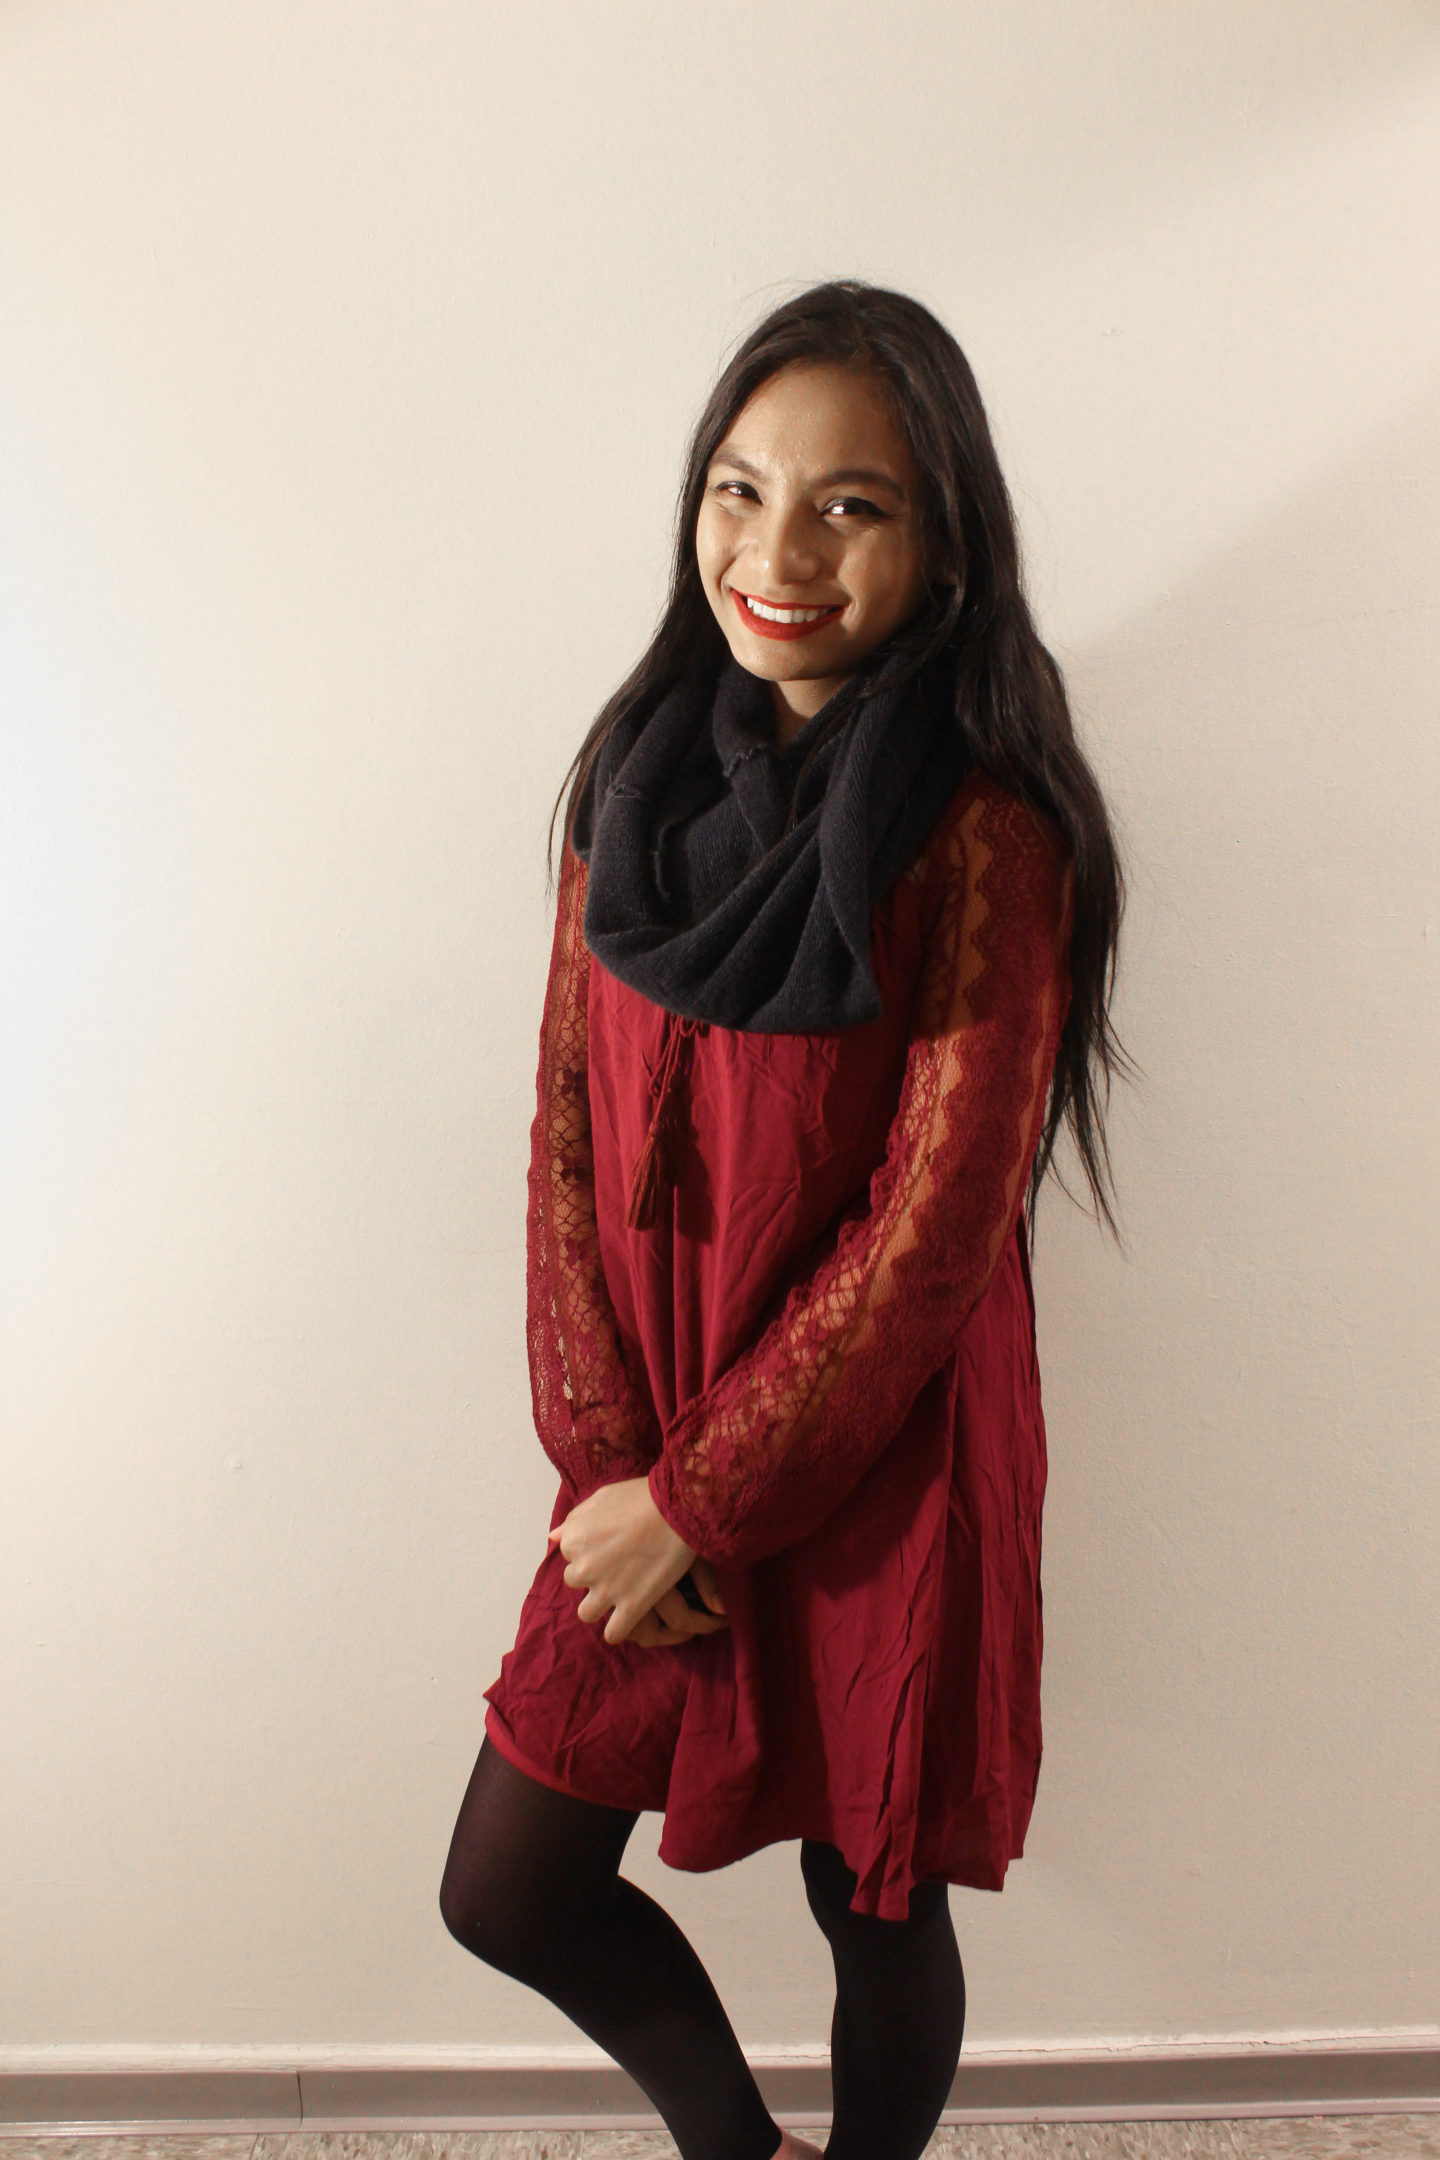 Maroon Dress for the Winter